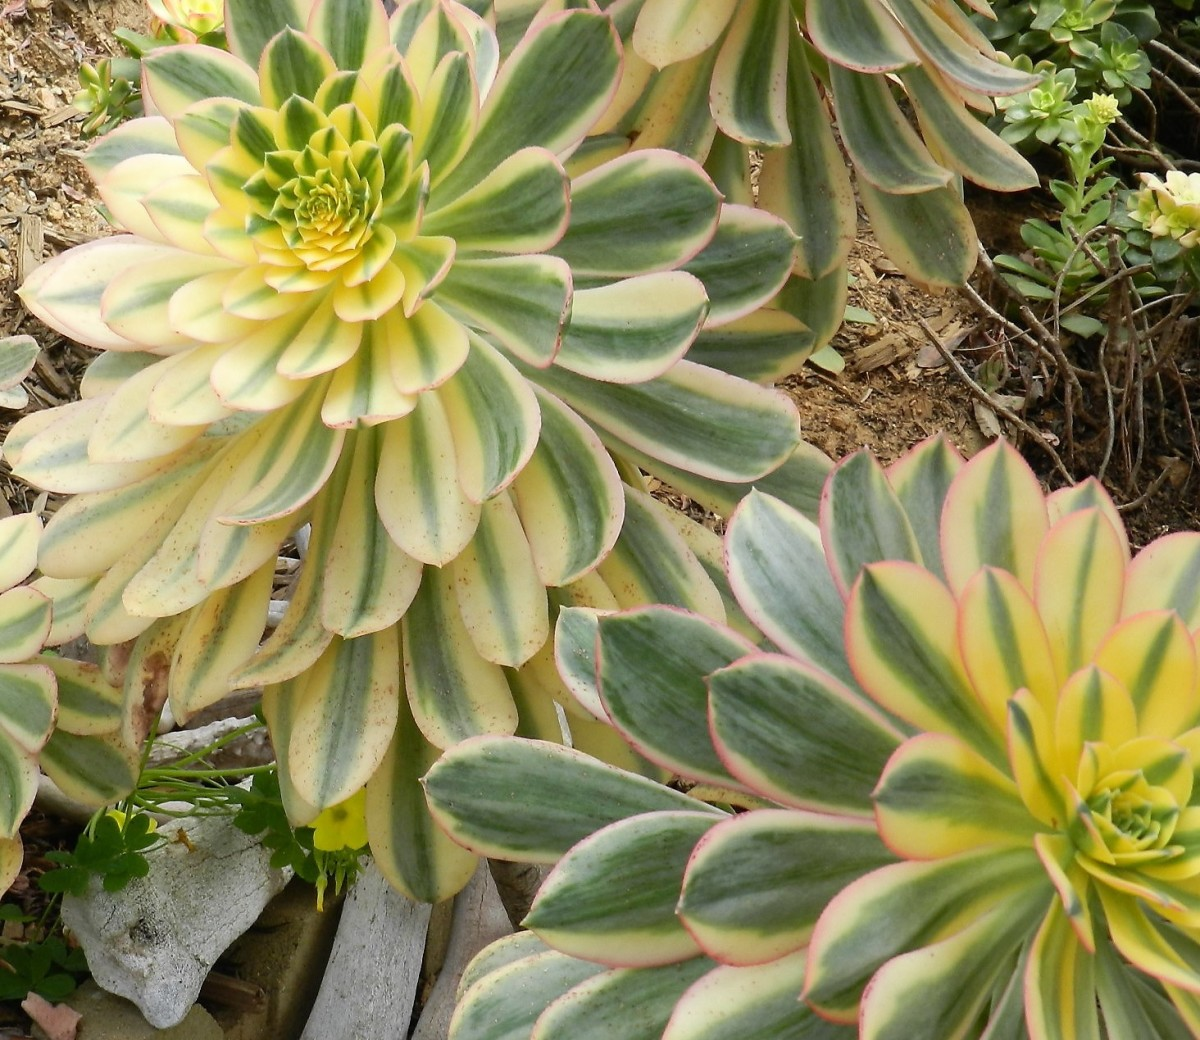 Grow Aeonium Arboreum Sunburst in Your Succulent Garden